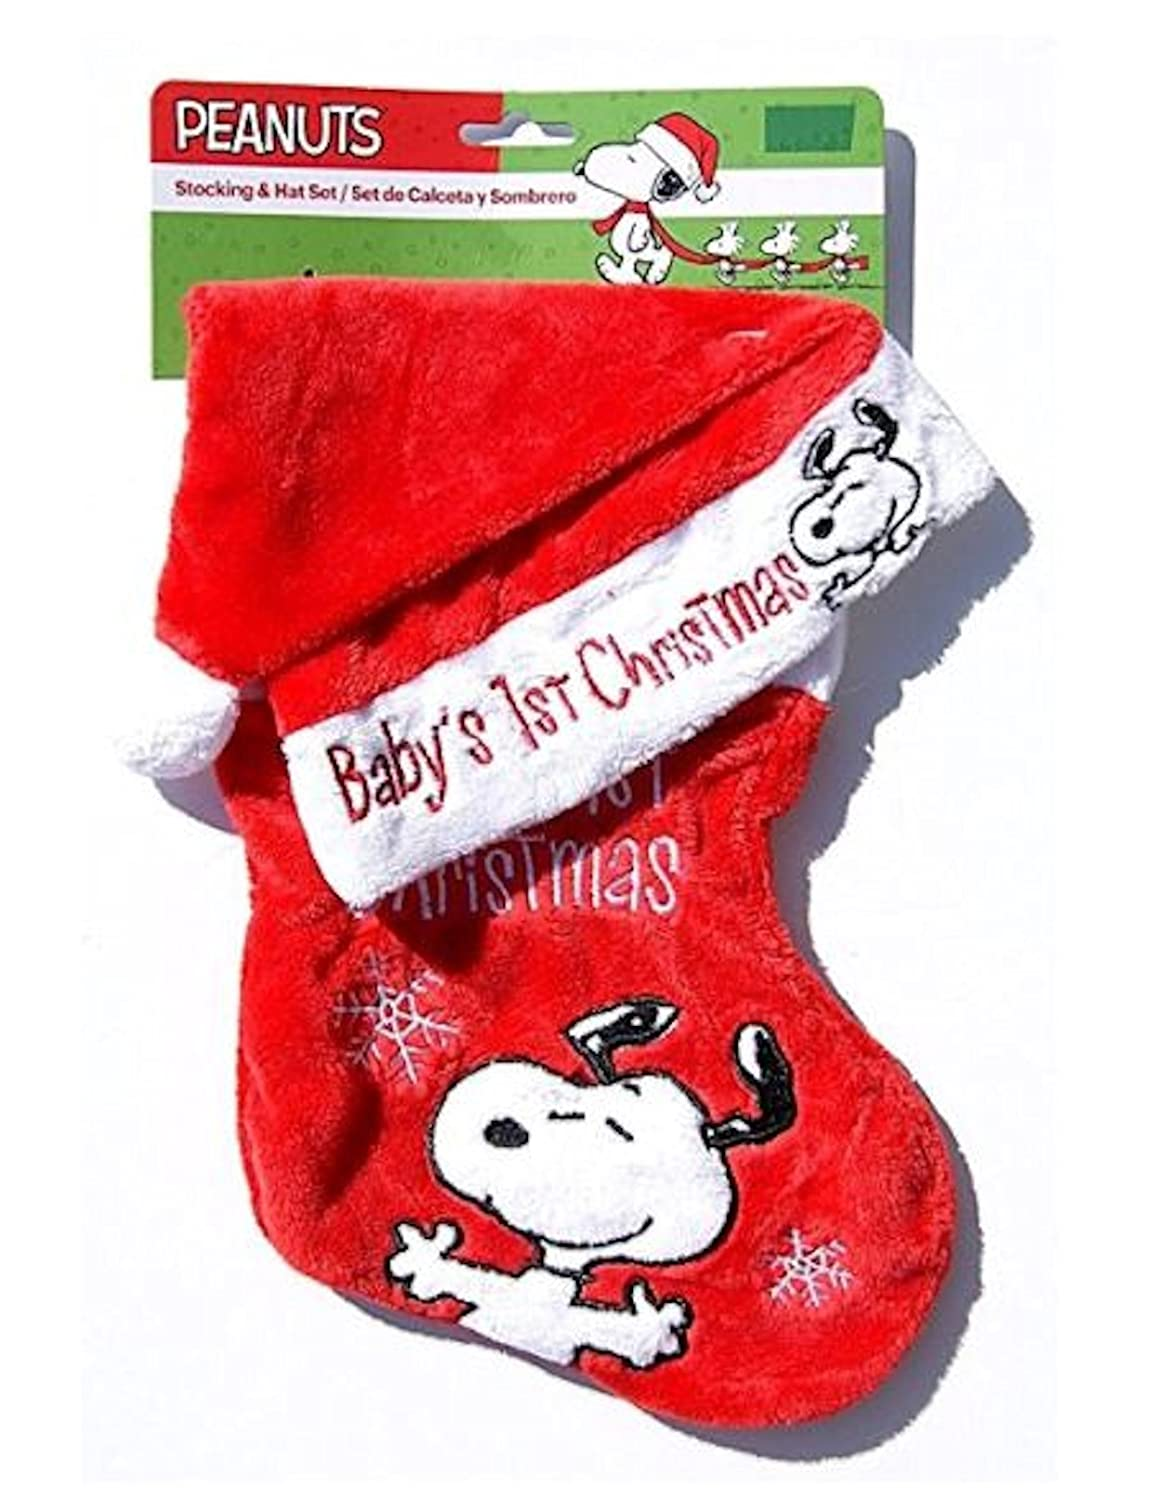 peanuts snoopy soft babys first christmas stocking and hat set dan dee - Snoopy Christmas Stocking